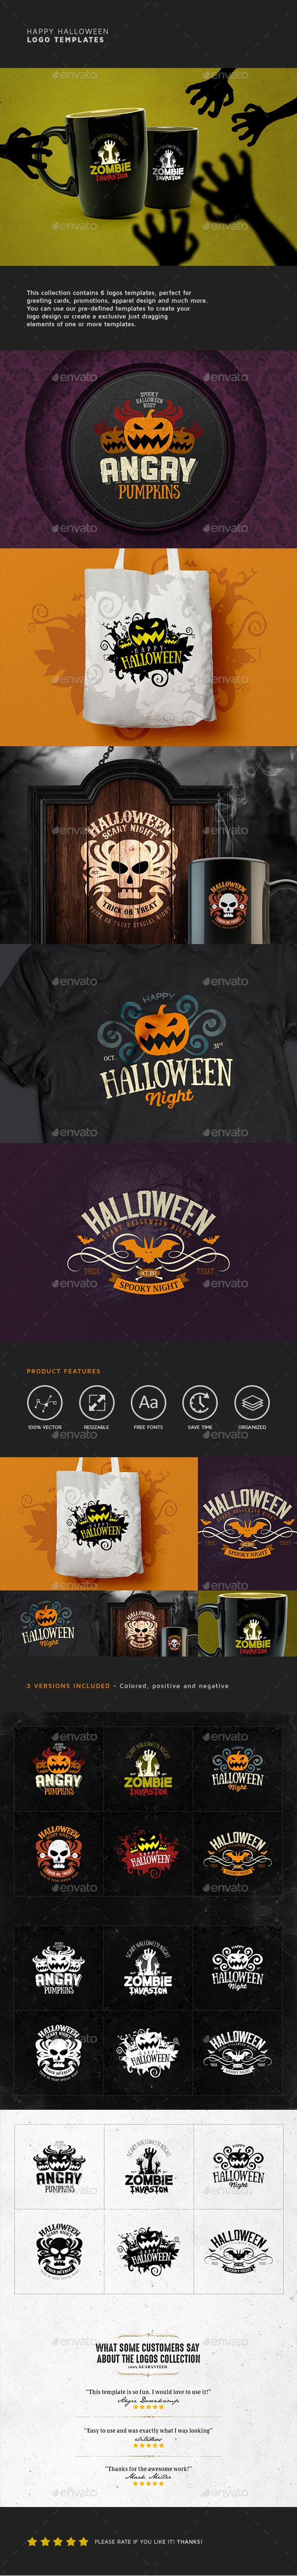 Happy Halloween Badge Logo Design Templates - Badges & Stickers Web Elements Template PSD. Download here: https://graphicriver.net/item/happy-halloween-logo-templates/17912834?ref=yinkira